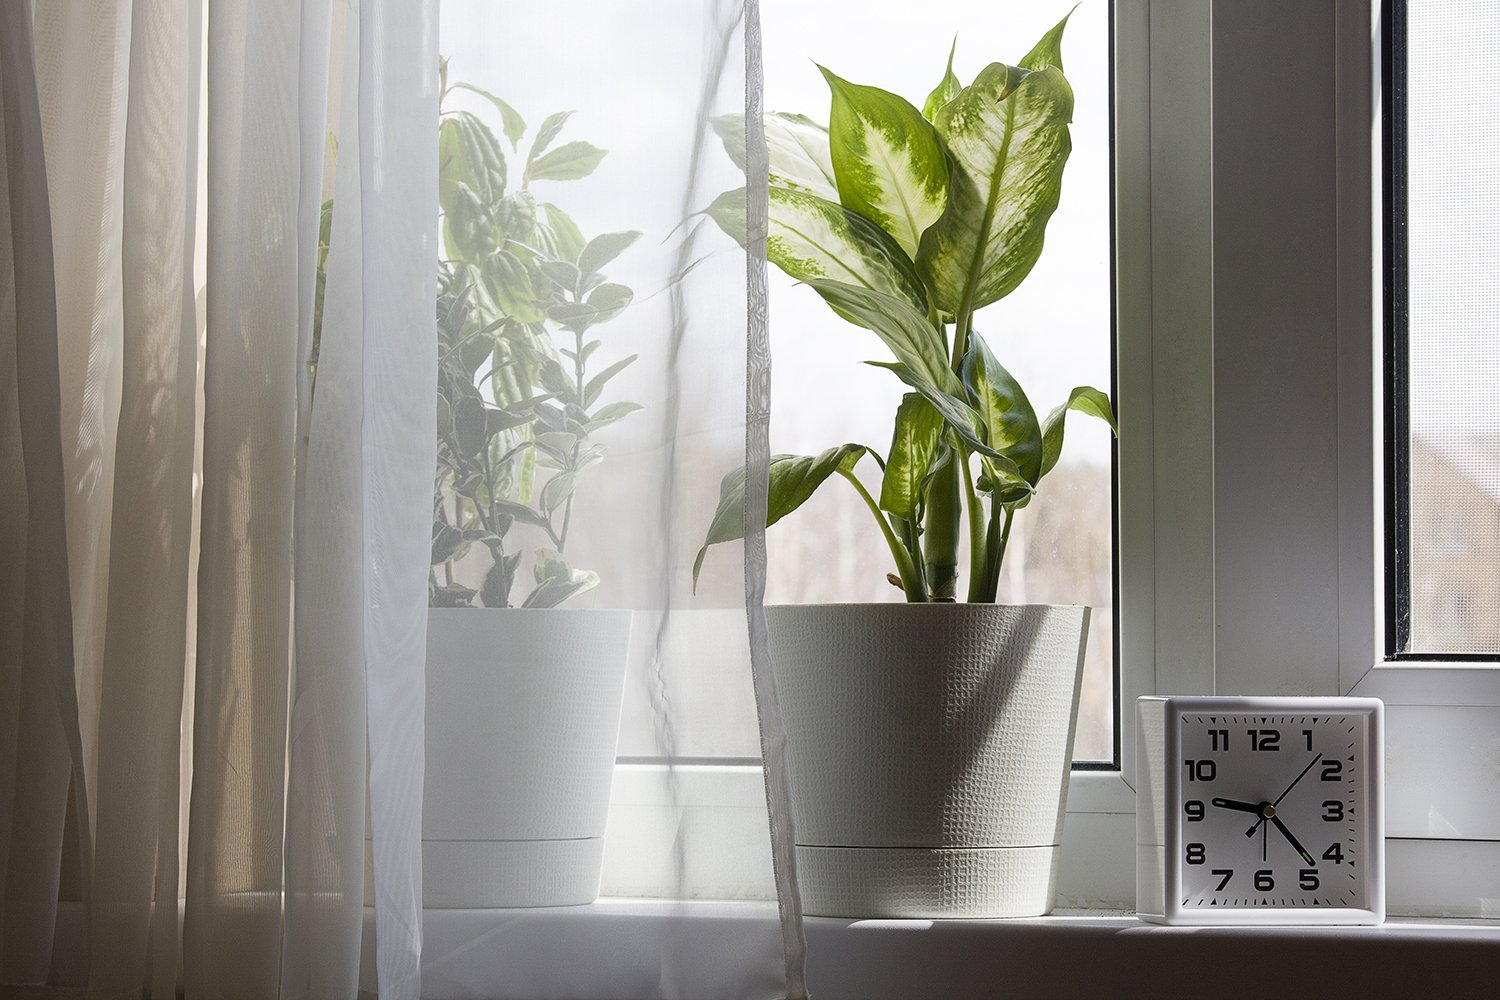 houseplants in white flower pot and clock near the window example image 1